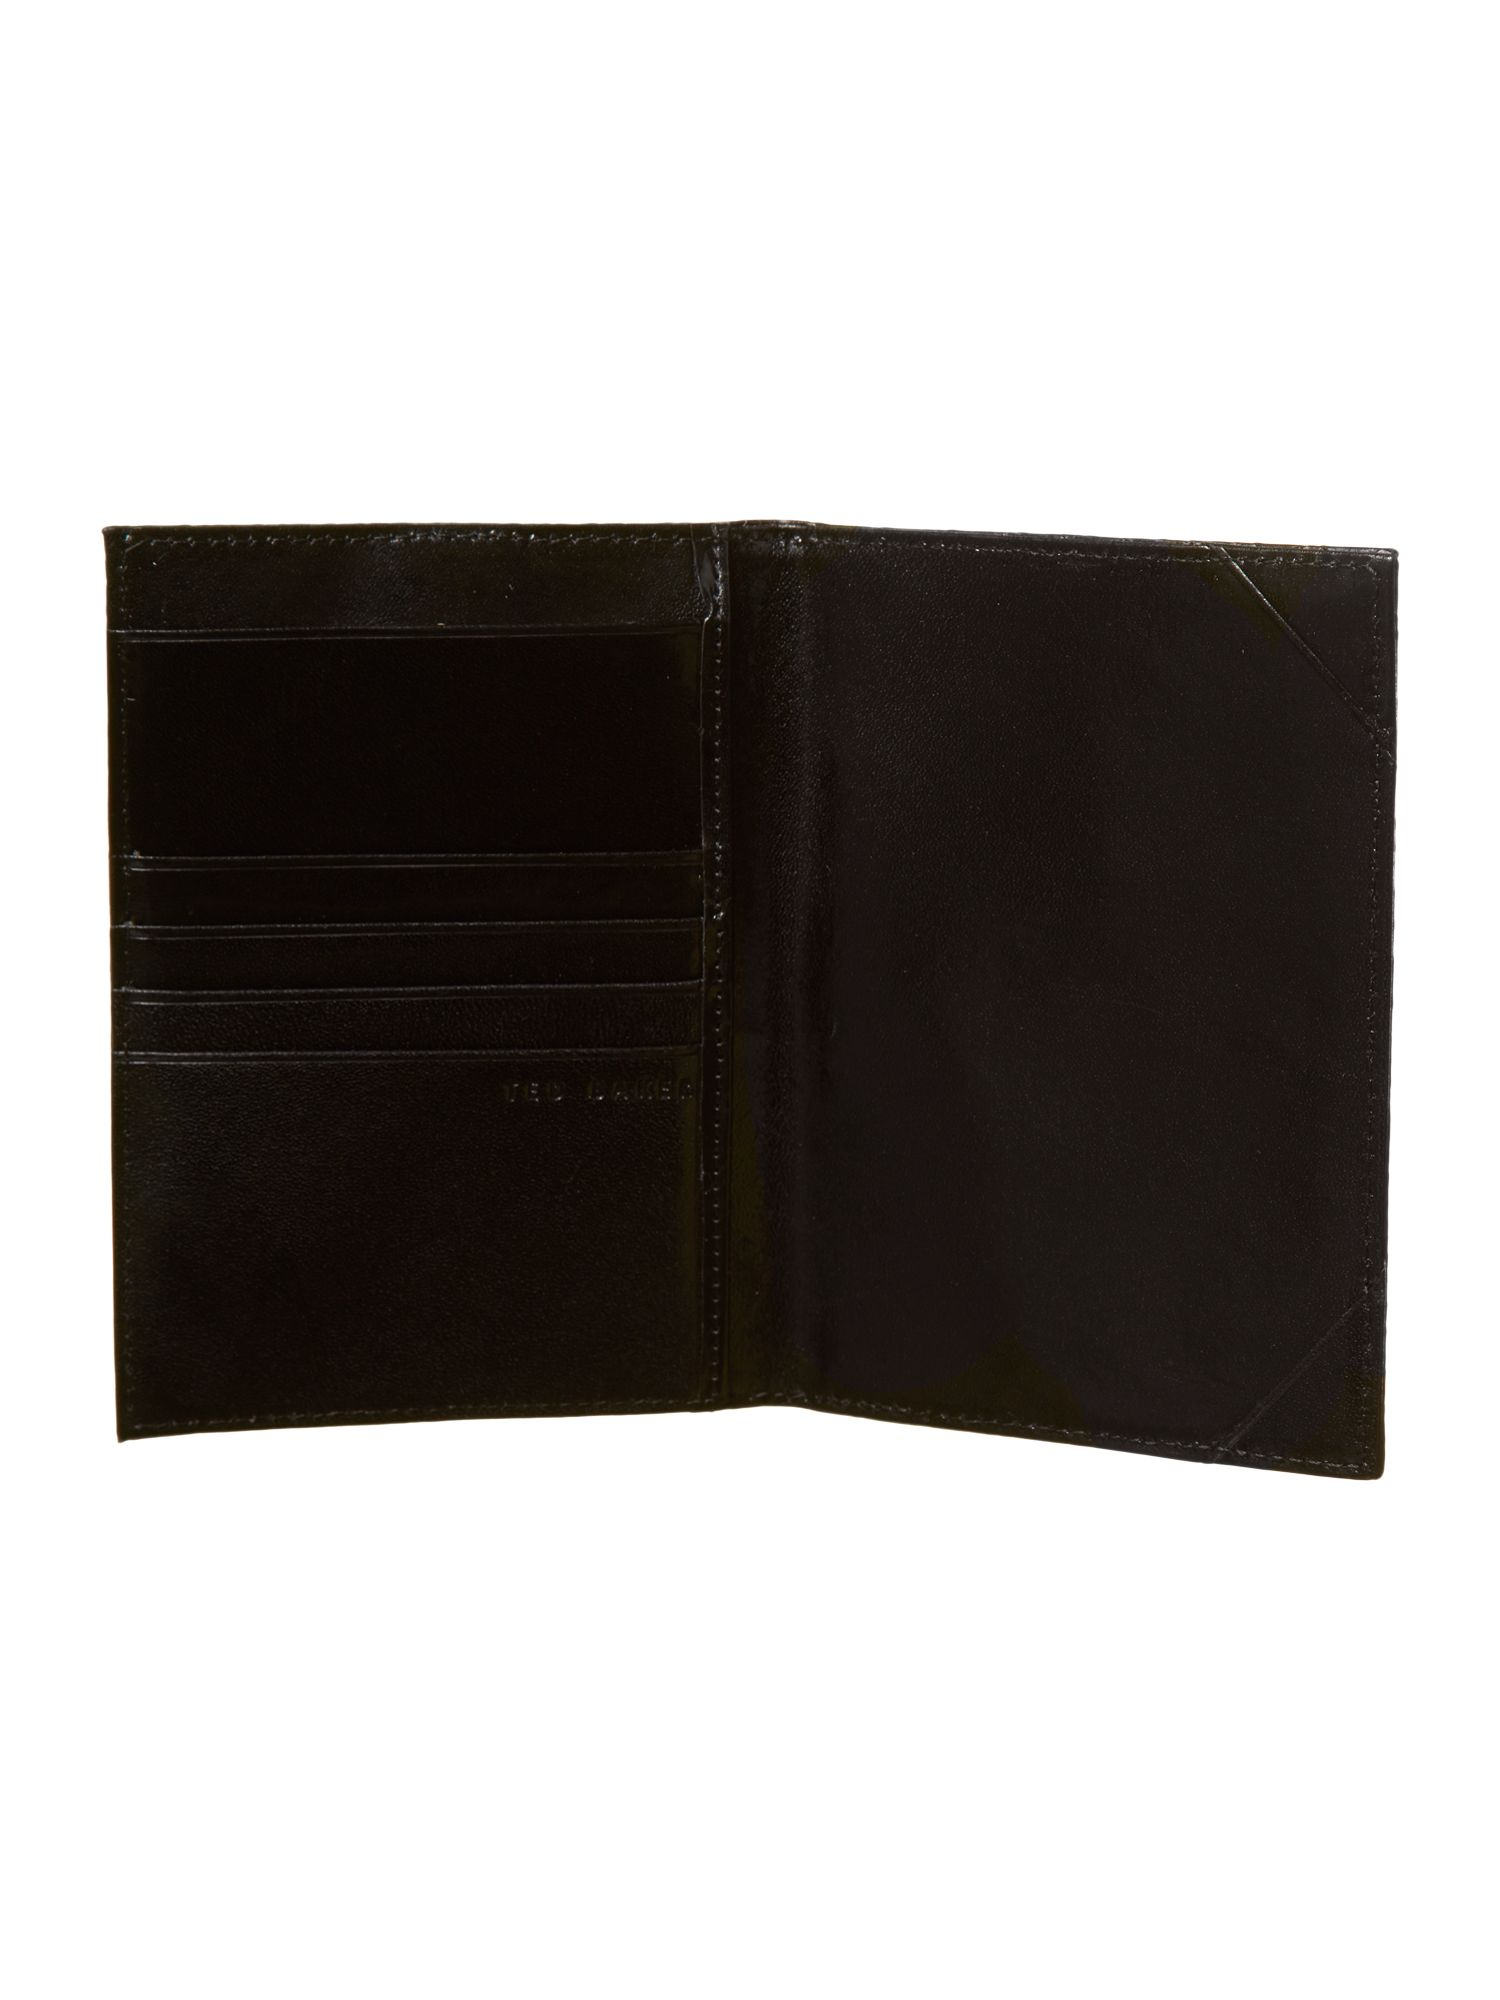 Woven leather passport and money clip gift set